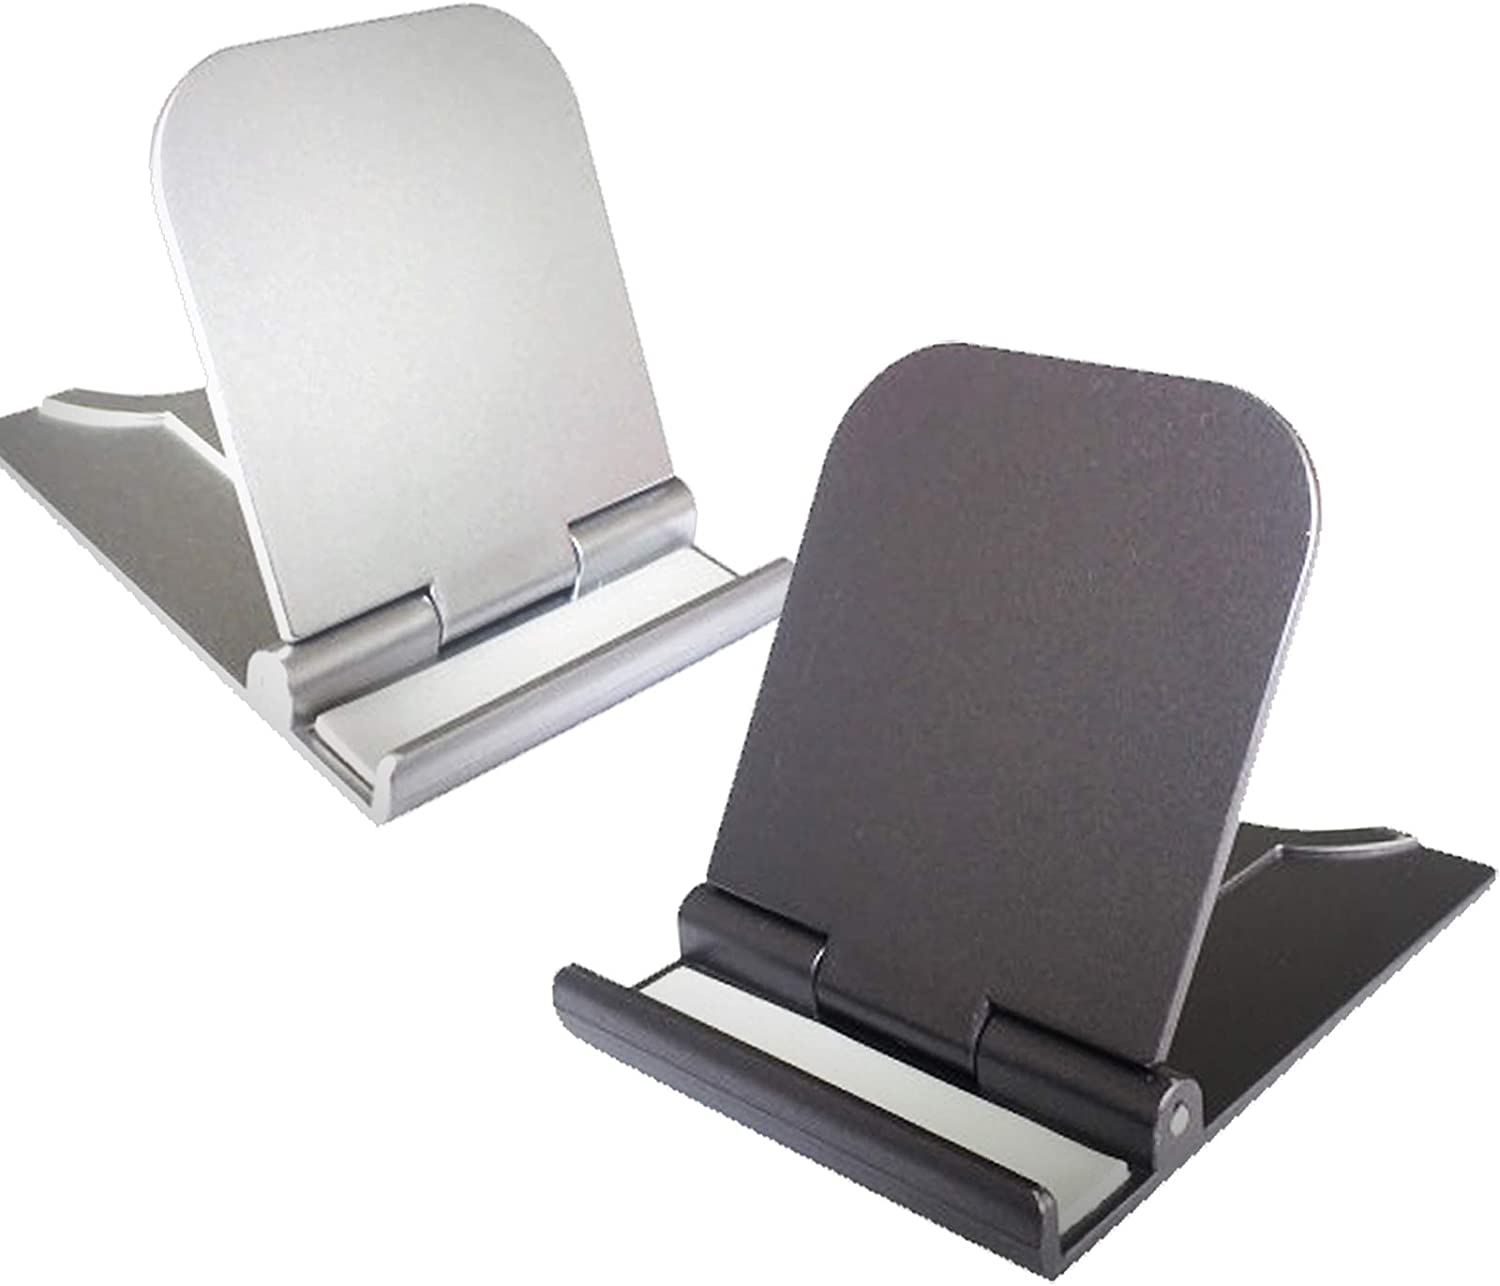 Cell Phone Stand, 2Pack Cellphone Holder for Desk Small Phone Stand for Travel Lightweight Portable Foldable Tablet Stands Desktop Dock Cradle for iPhone Android Smartphone Office Supplies